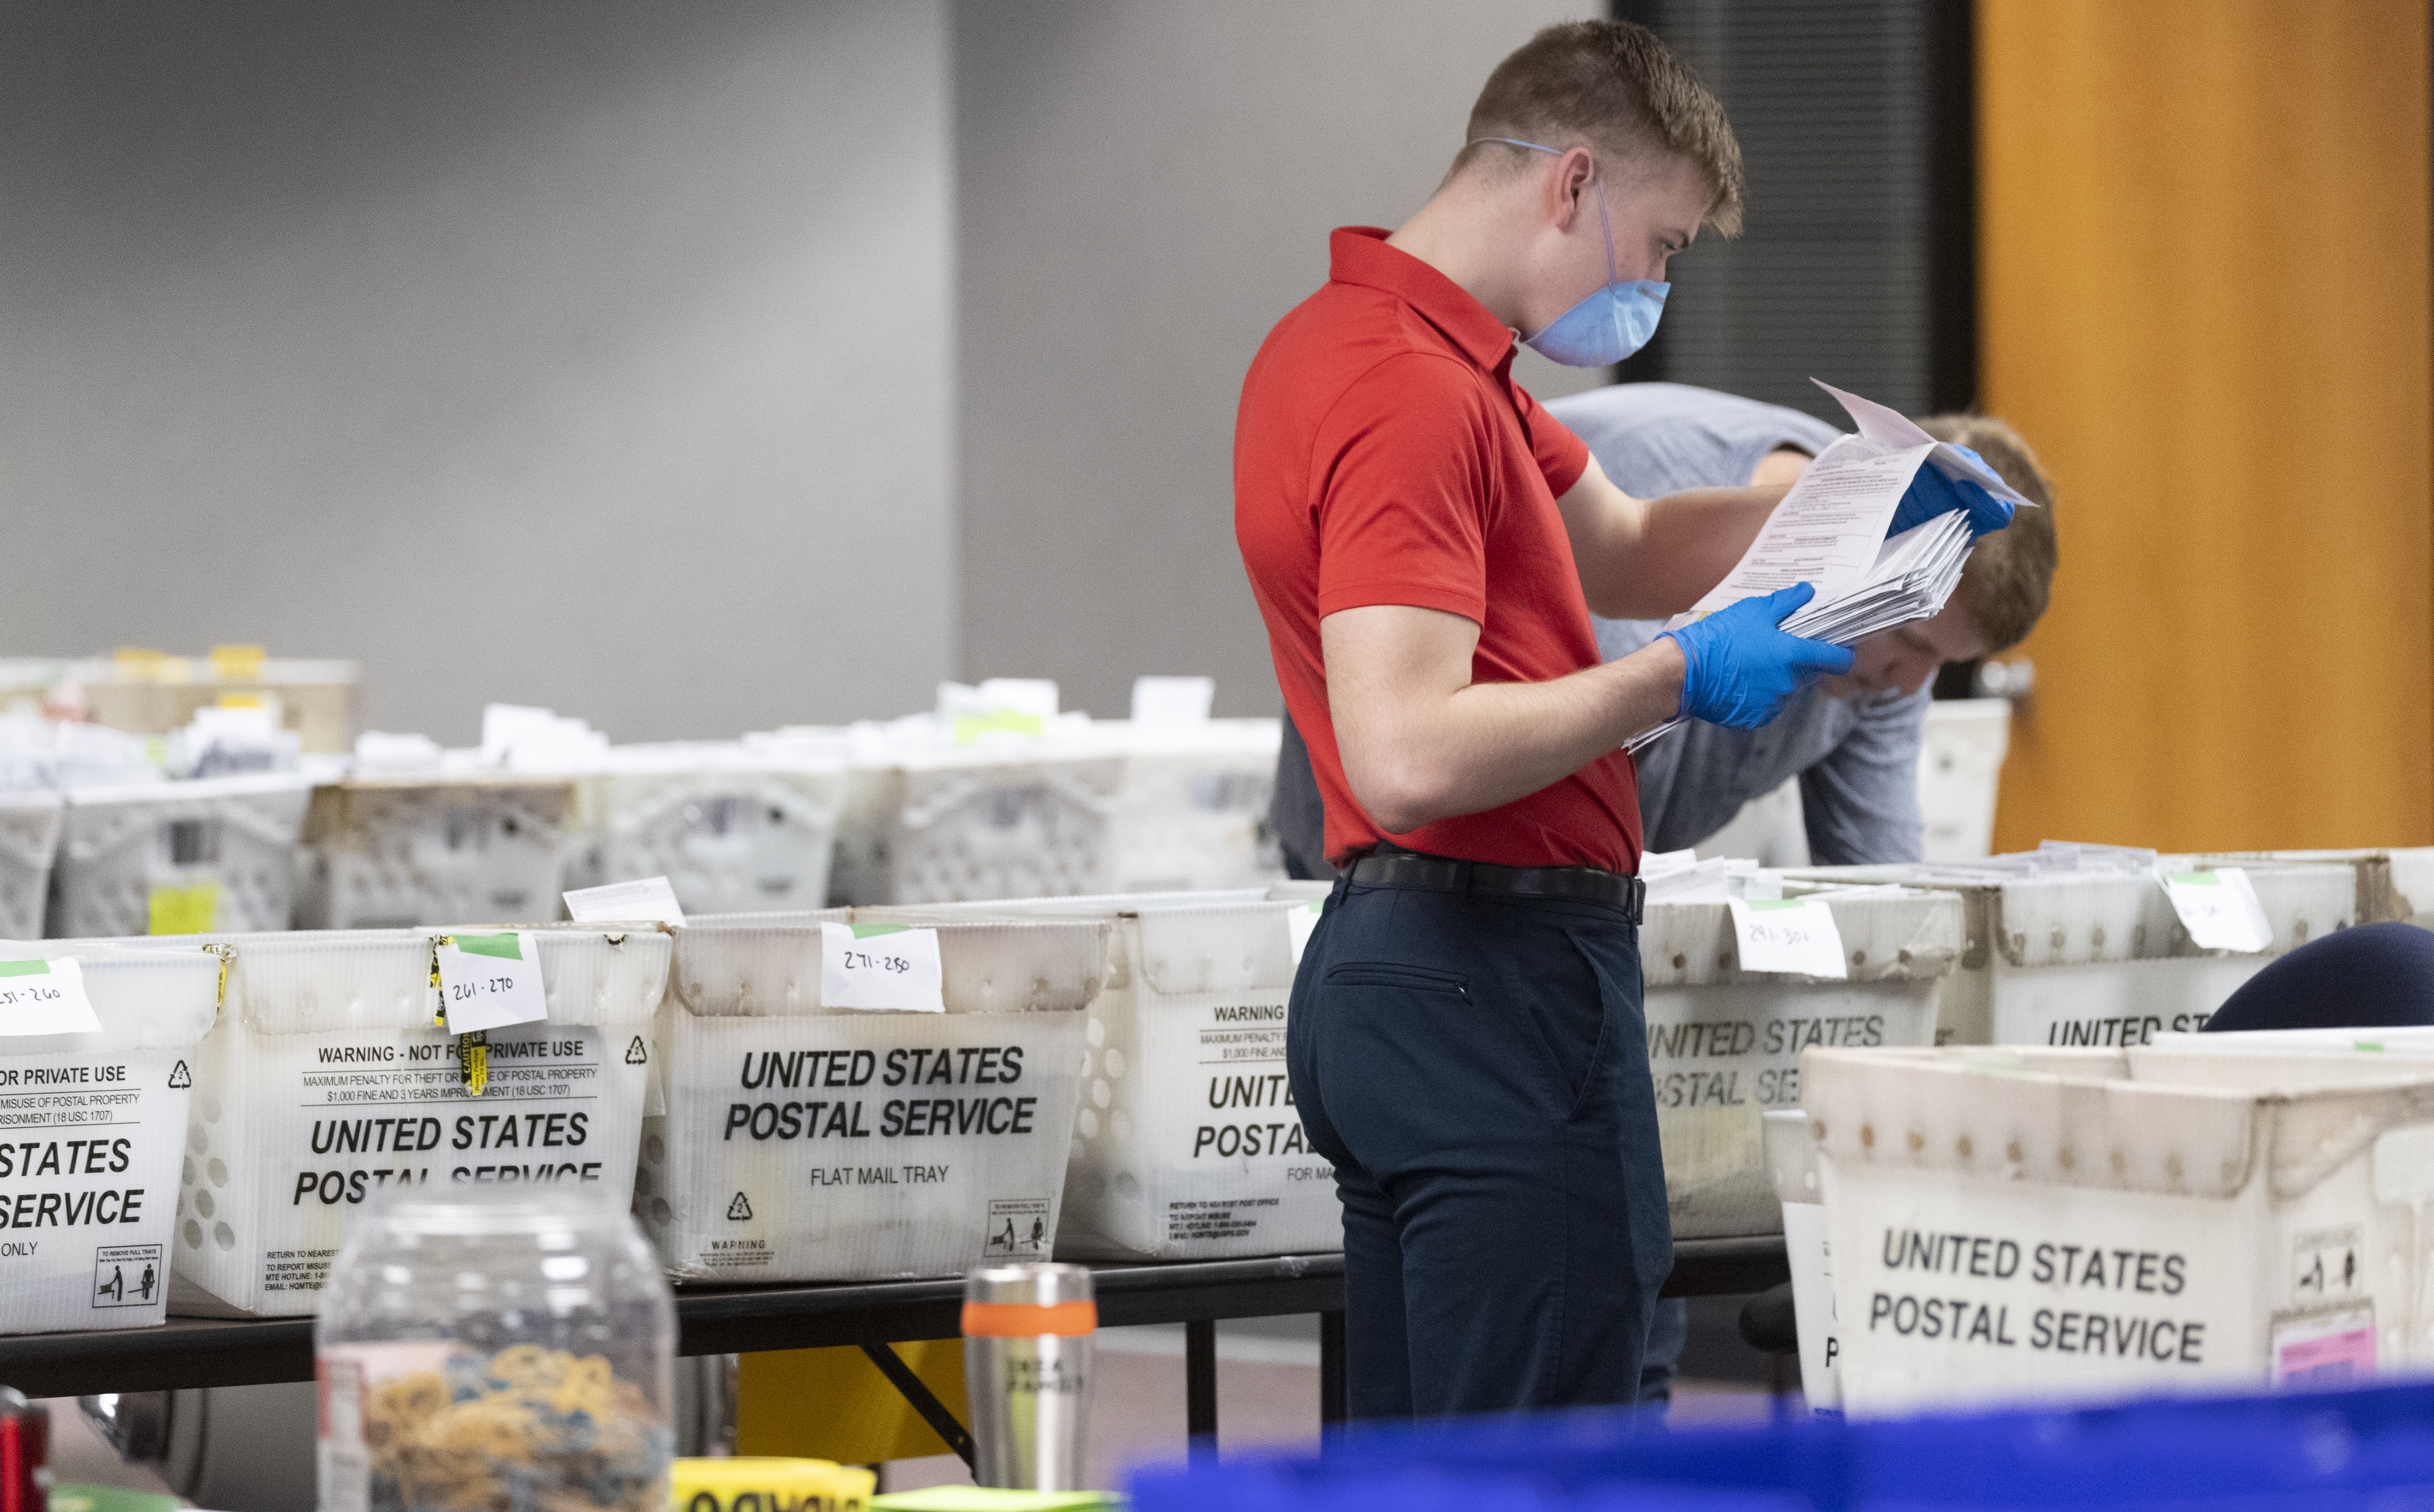 A City of Milwaukee Election Commission worker processes and sorts absentee ballots for Tuesday's primary election on April 8, 2020, in downtown Milwaukee, Wis.